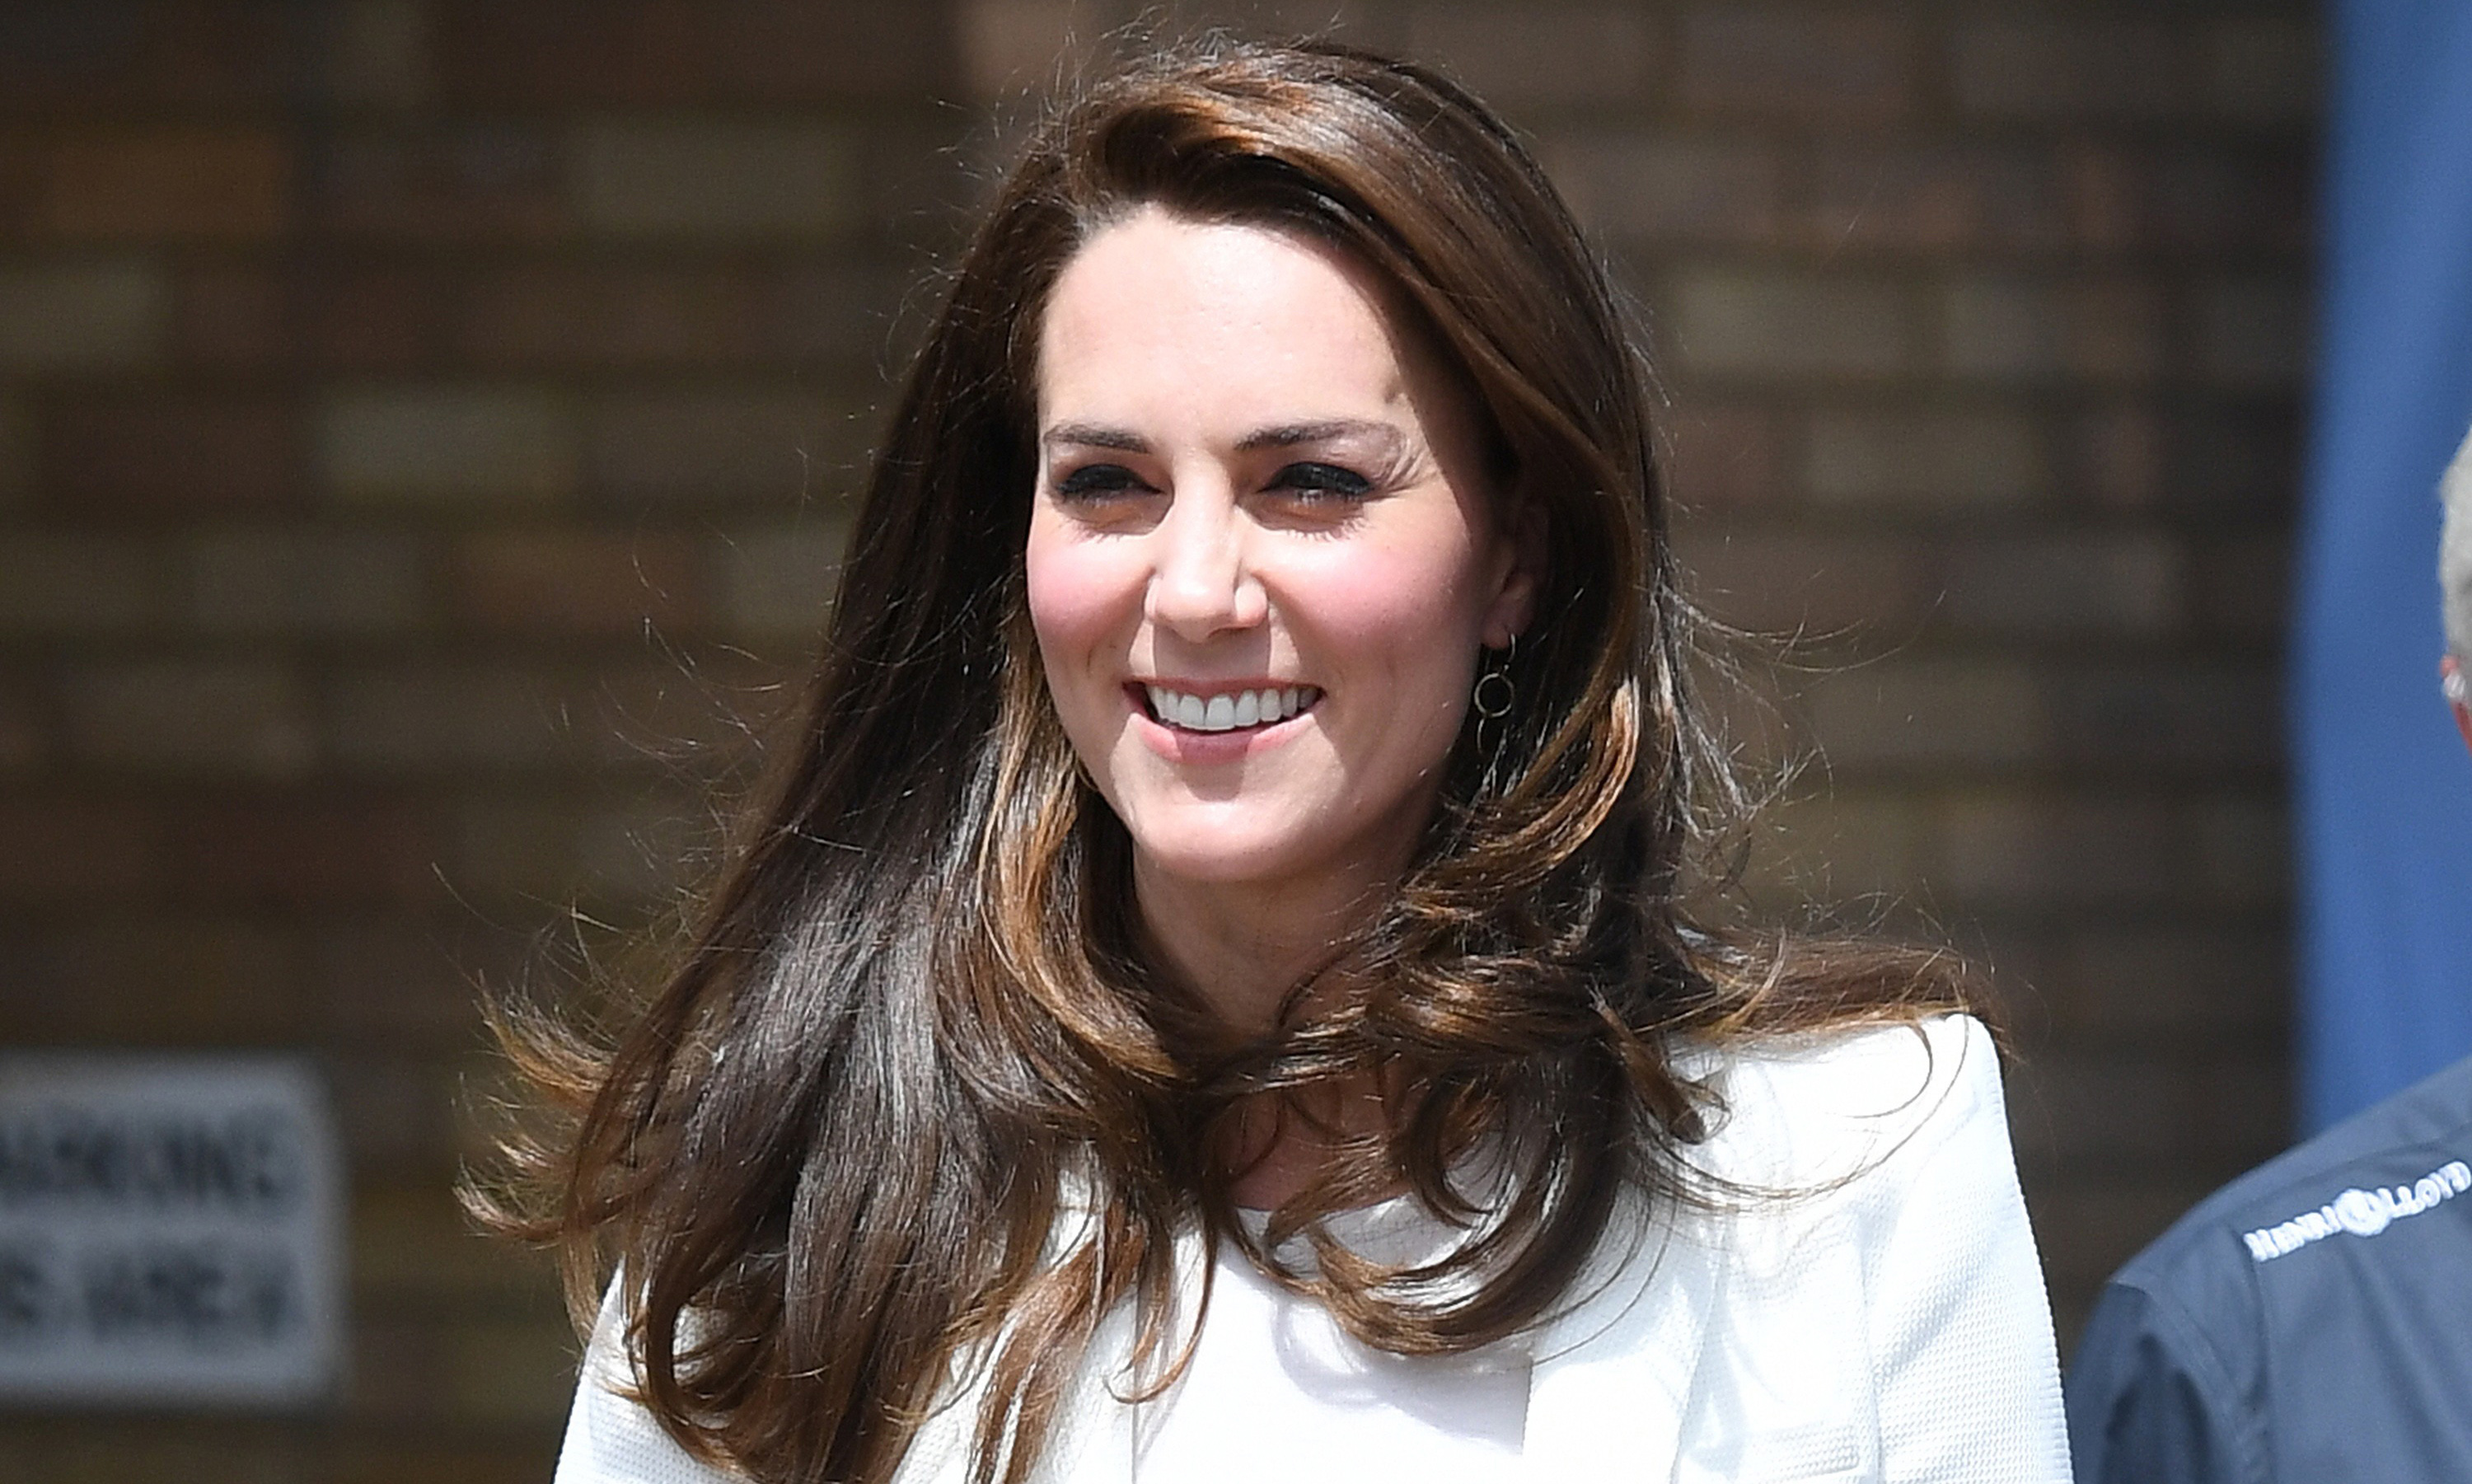 Kate Middleton Tended to a Sick Boy During a Royal Visit